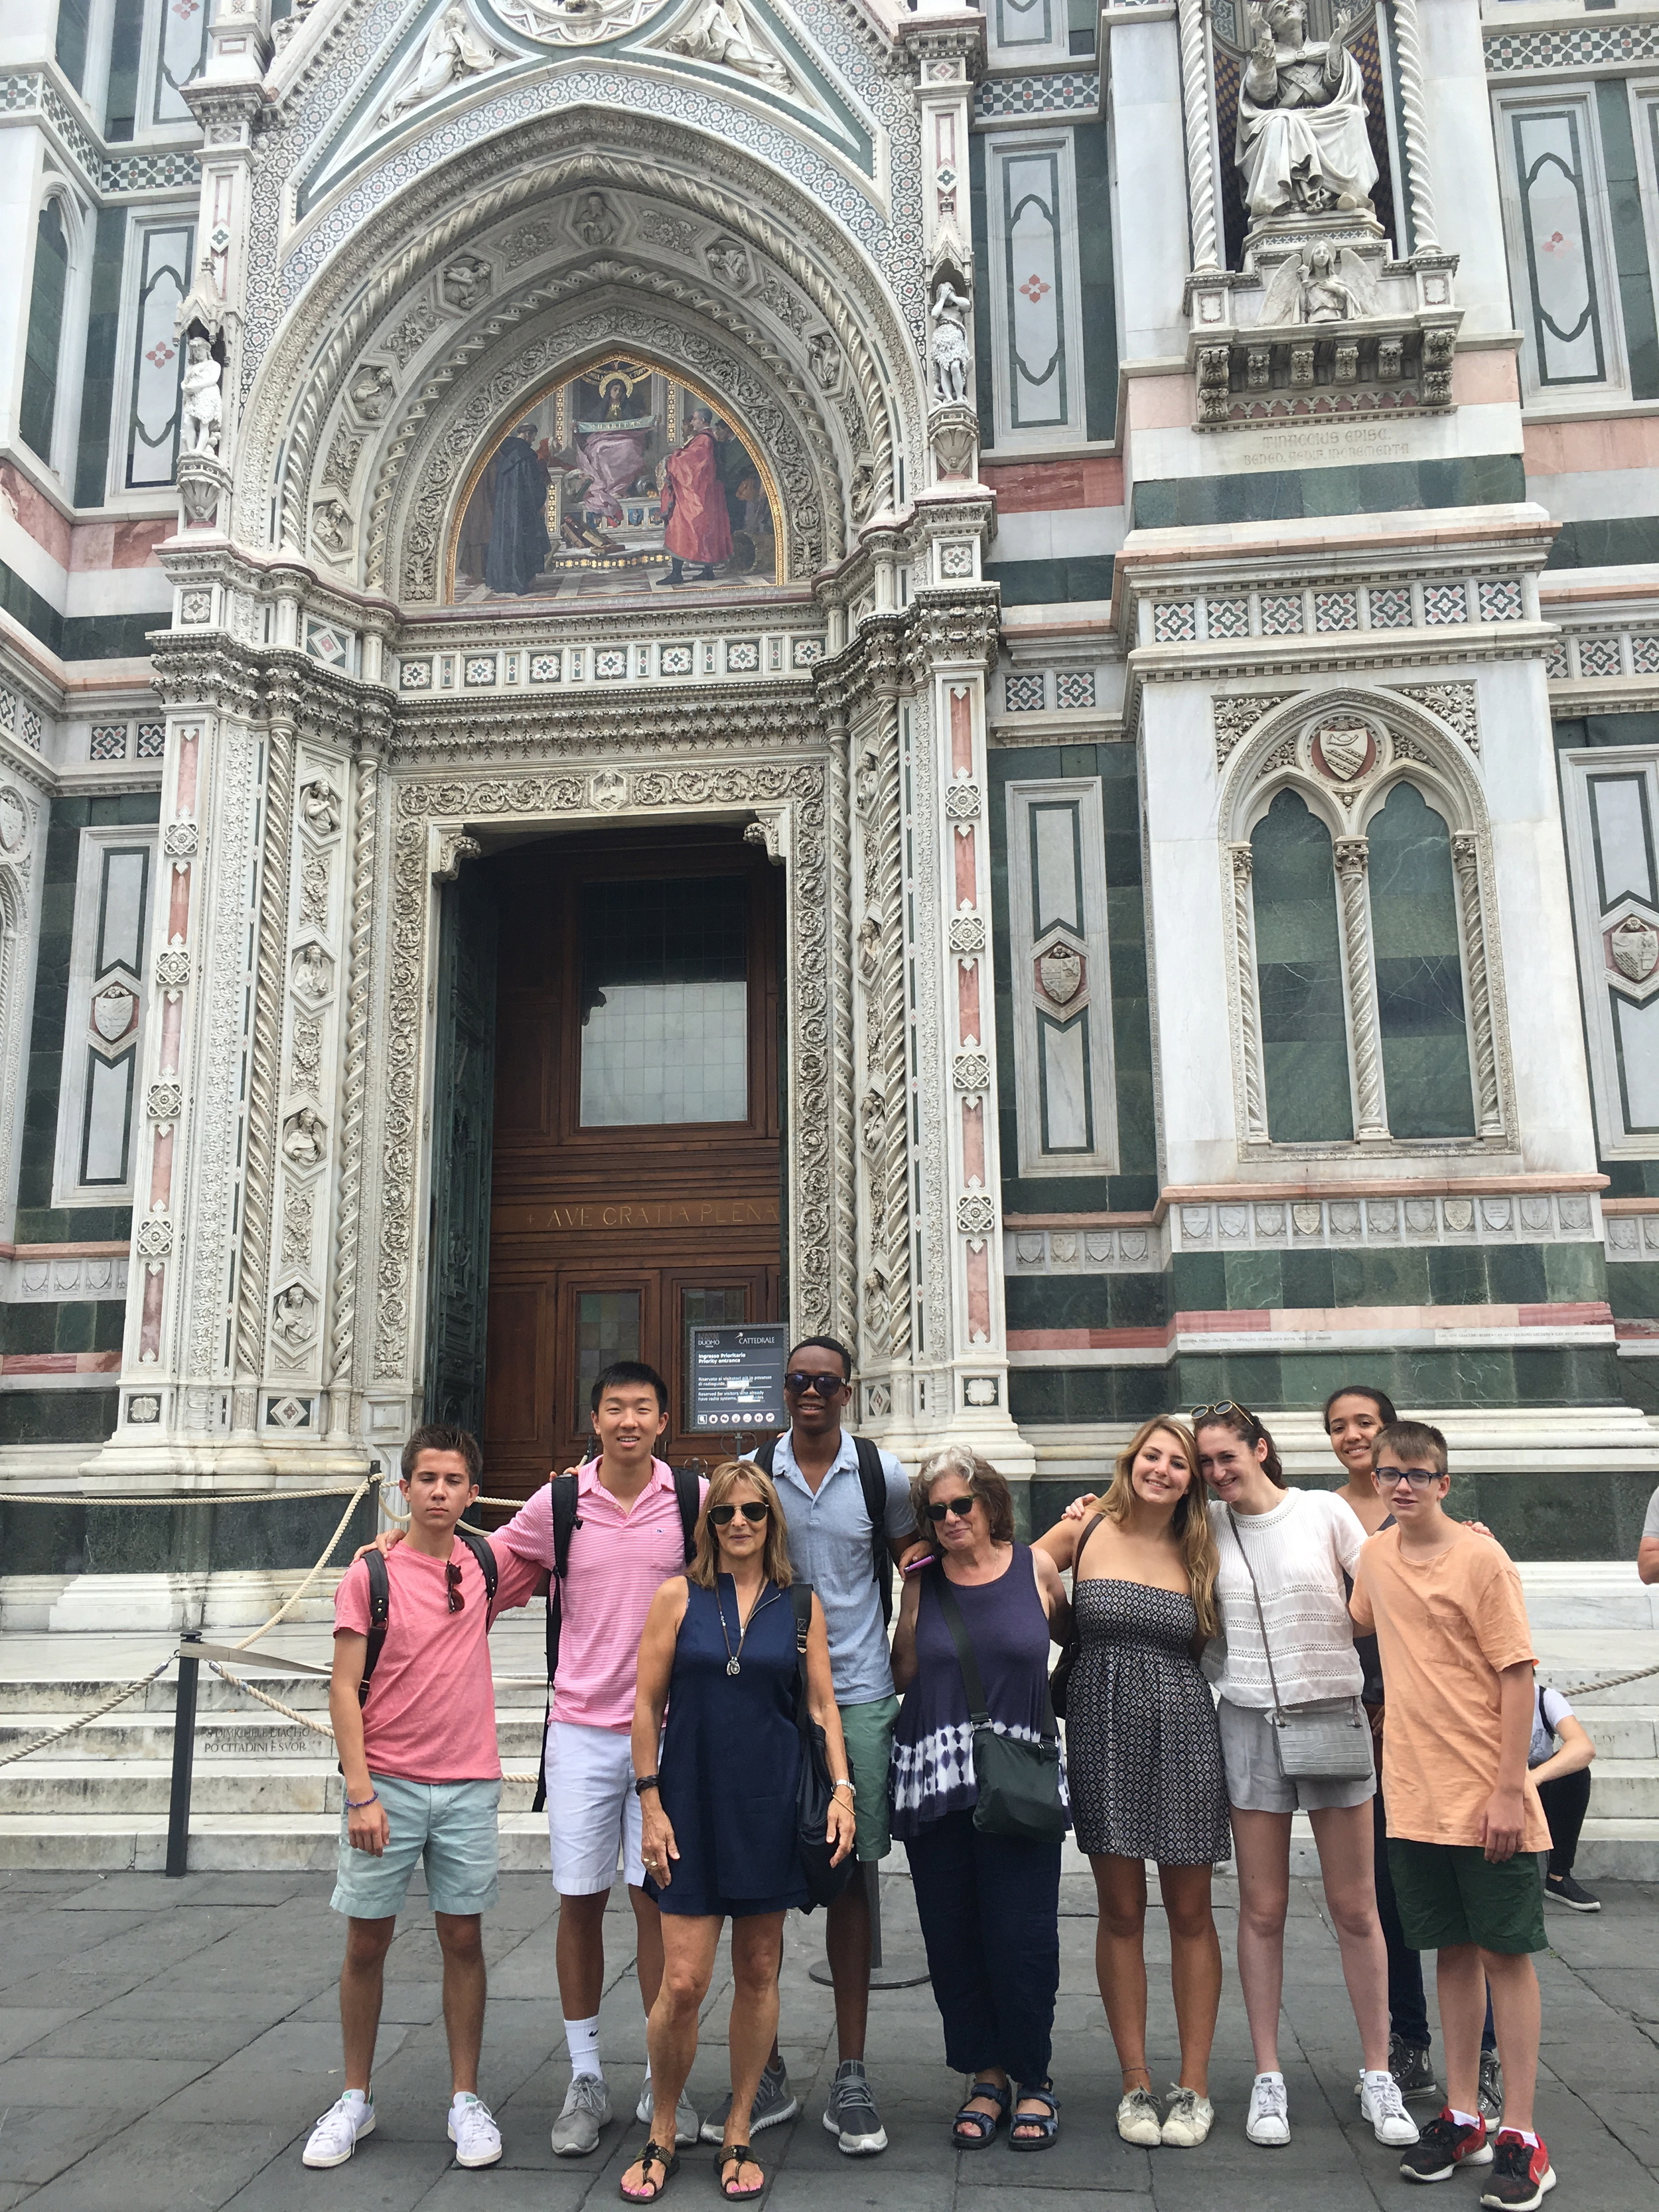 The whole group in front of the cathedral!